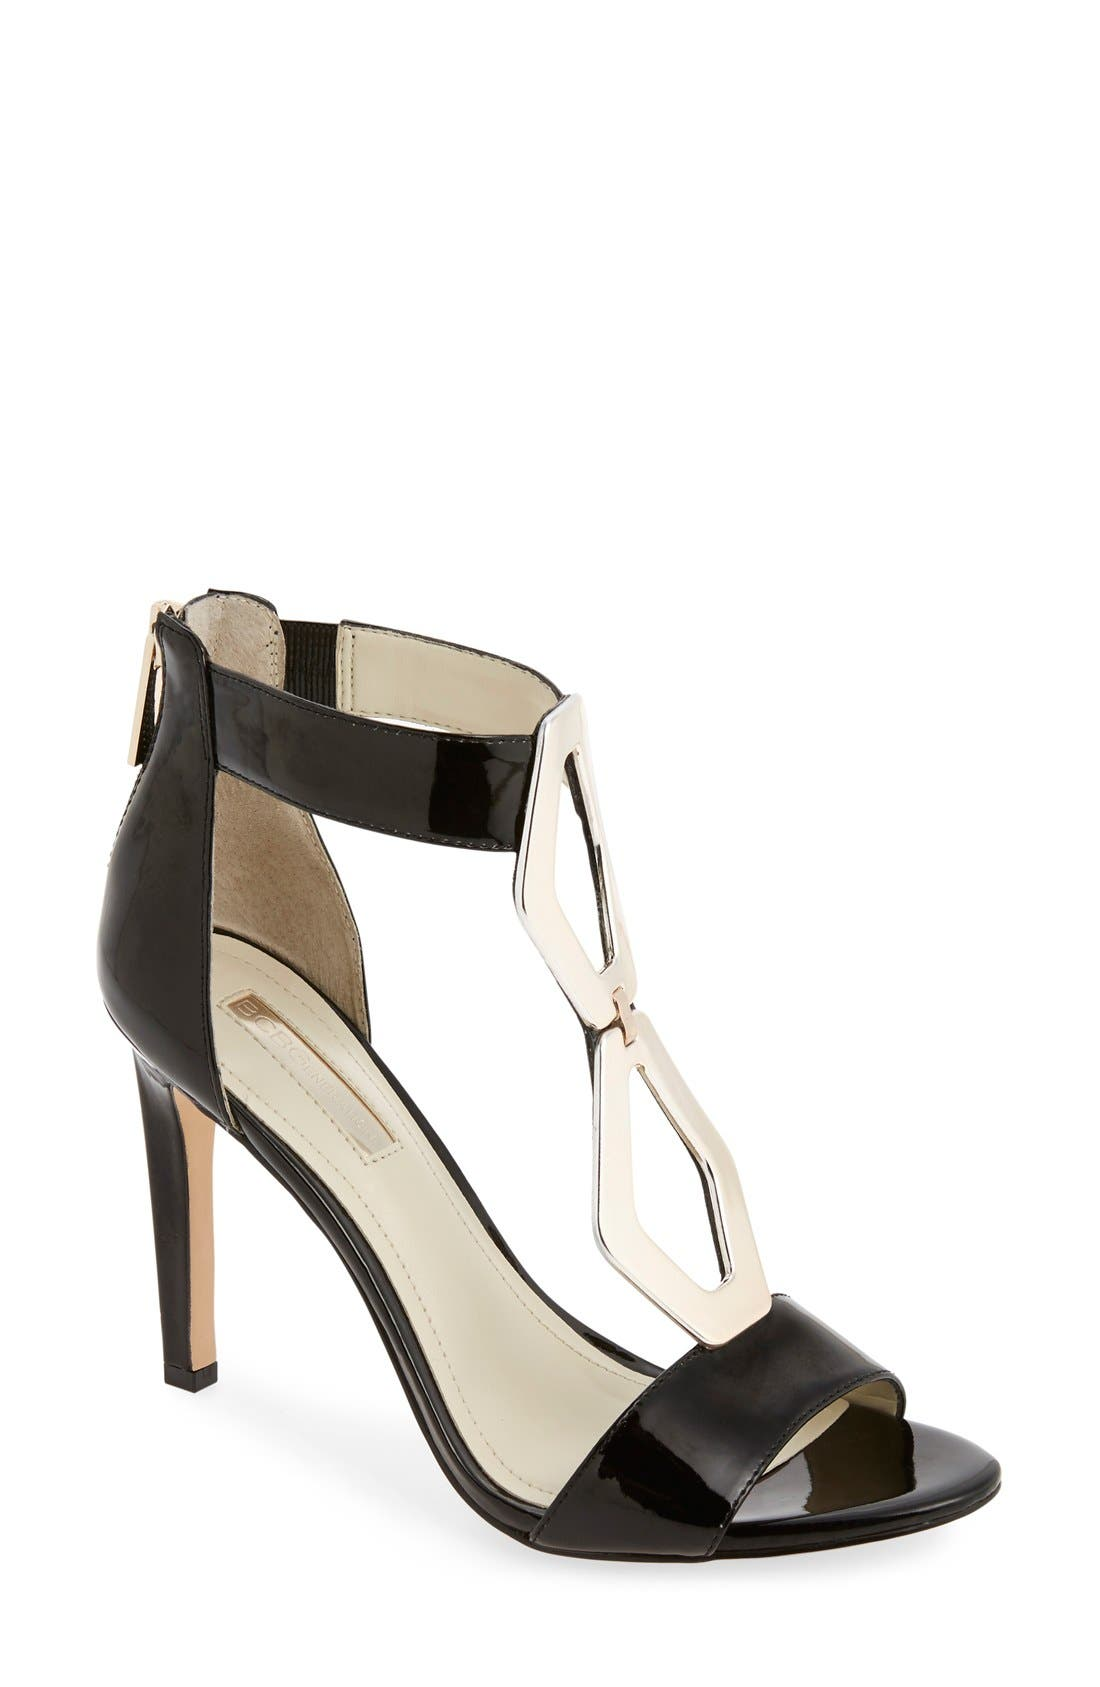 Alternate Image 1 Selected - BCBGeneration 'Cayce' Patent Sandal (Women)